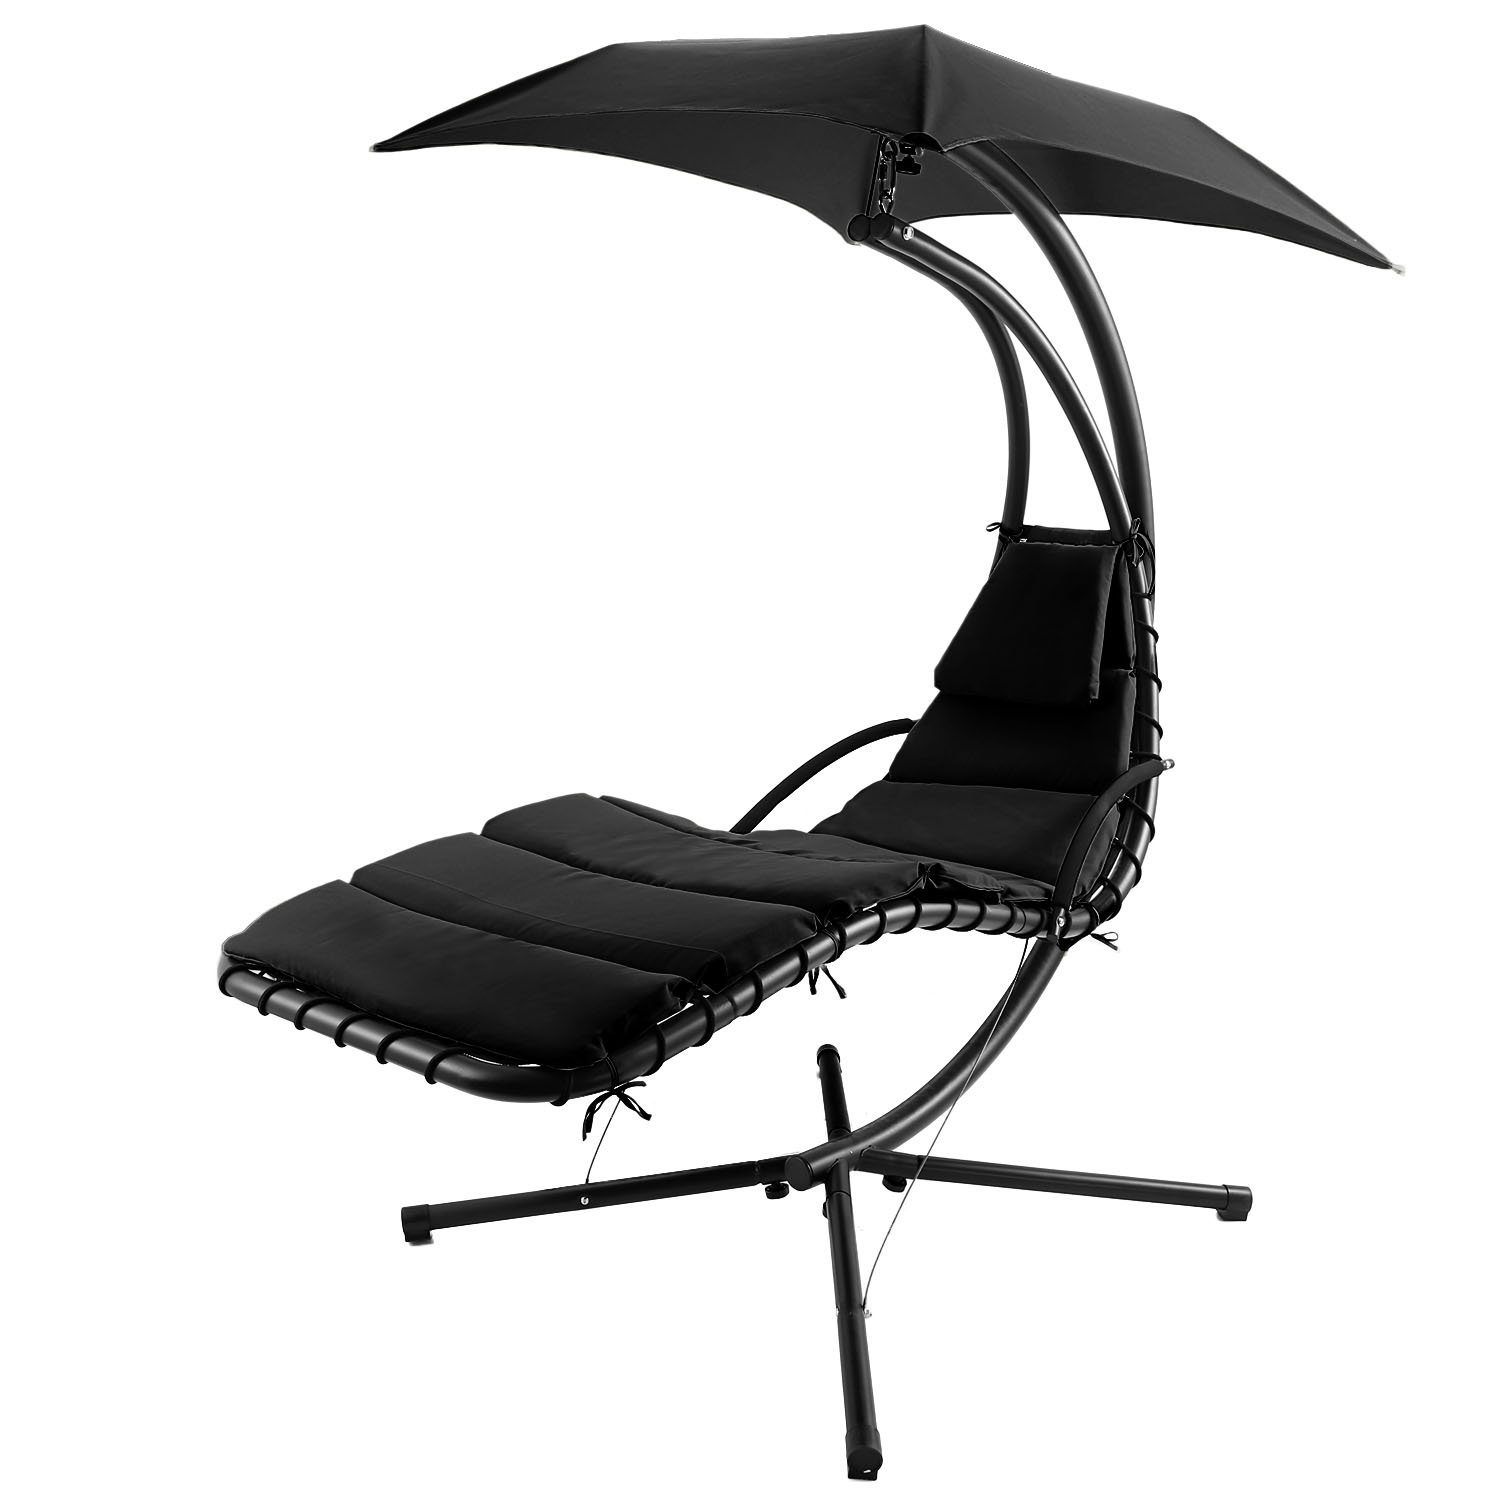 Yuebo 350lbs Hanging Chaise Lounger Chair Arc Stand Removable Canopy Air Porch Swing Hammock Chair with Pillow for Patio Garden Indoor